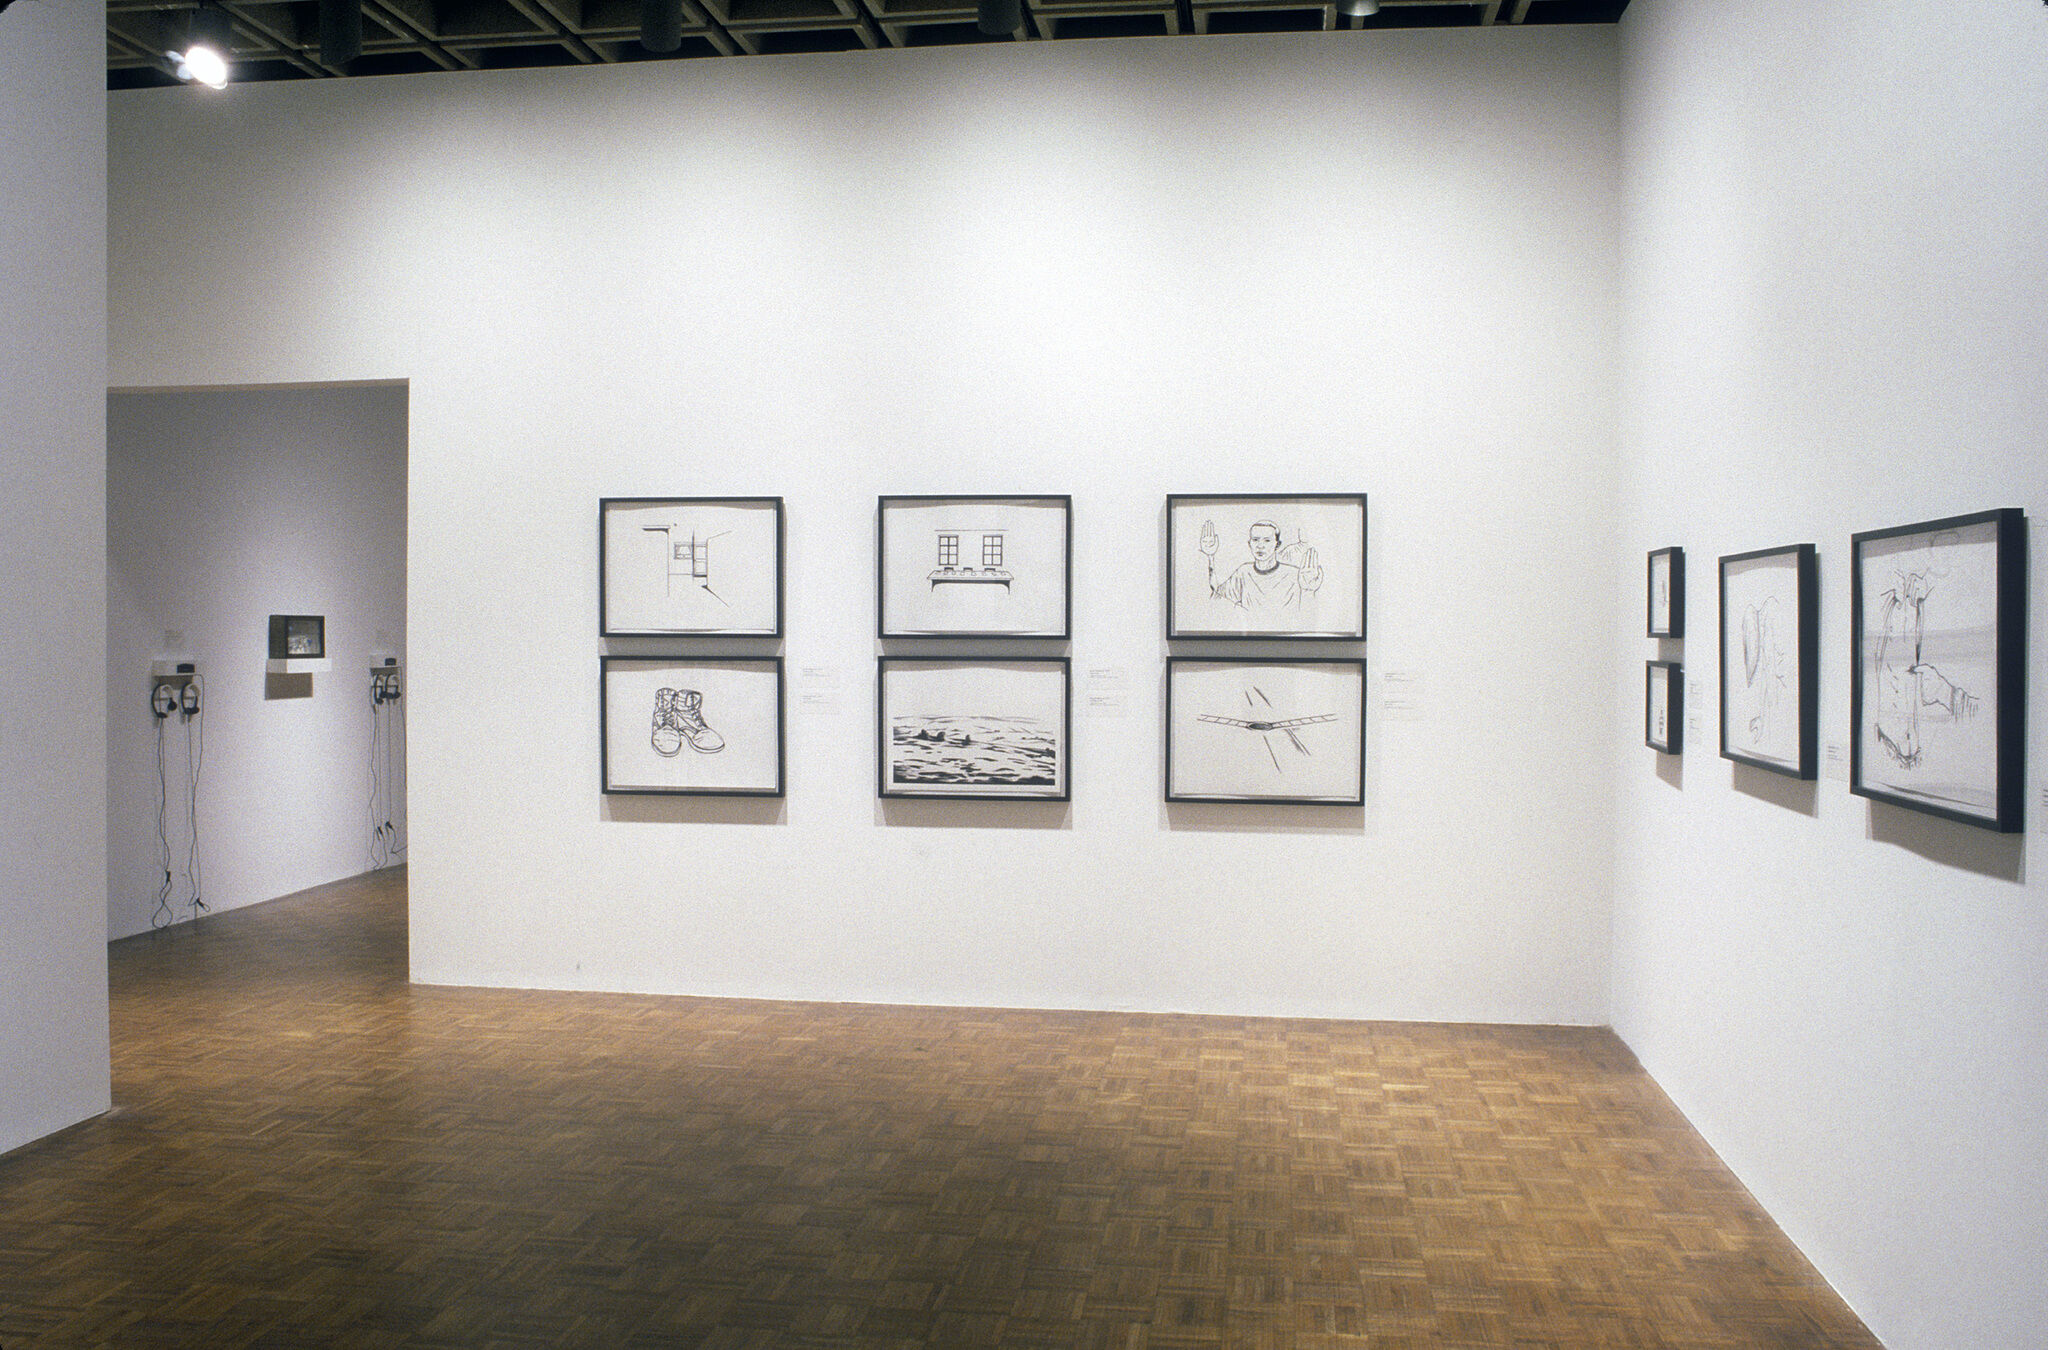 A gallery filled drawings displayed on the walls.